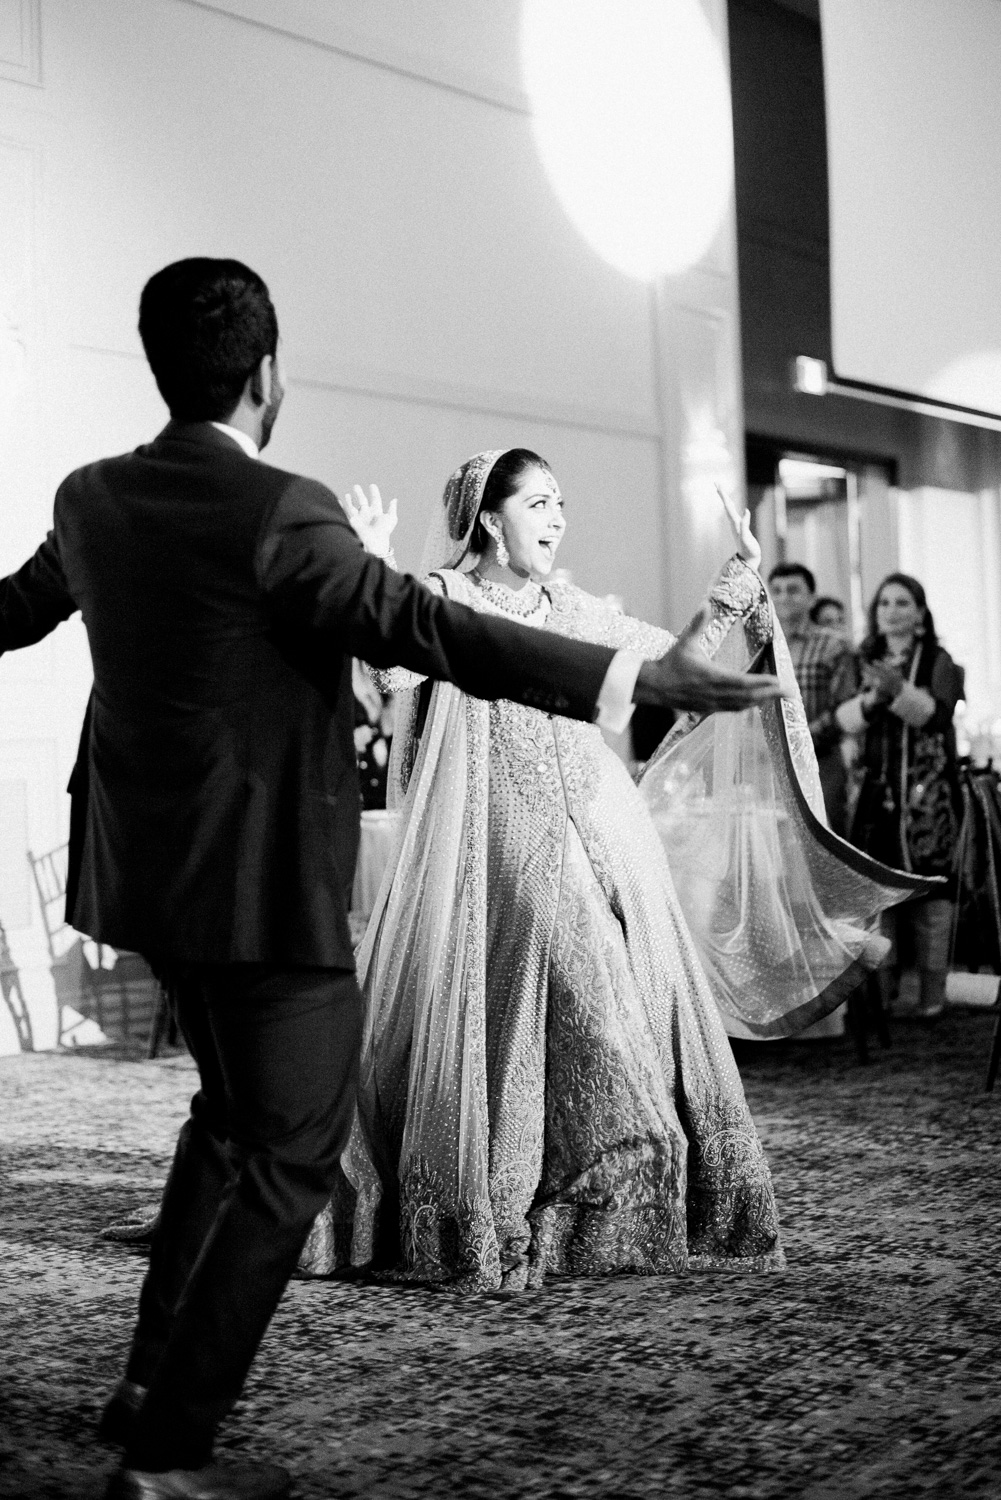 maha_salman_copper_creek_wedding-27.jpg